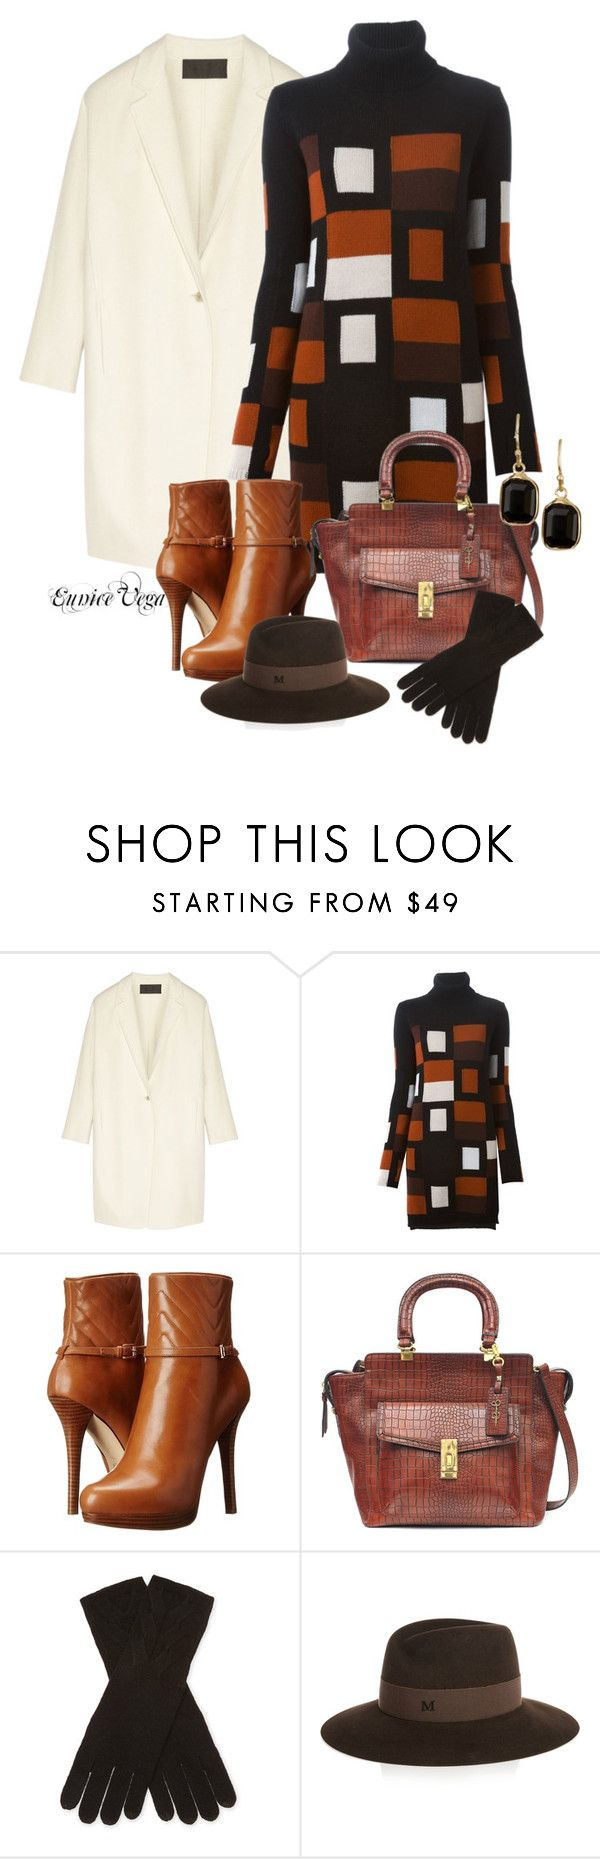 """WINTER STYLE:Sweater Dress"" by eunice-perez-de-vega ❤ liked on Polyvore featuring Donna Karan, Fendi, MICHAEL Michael Kors, Jessica Simpson, Qi Cashmere, Maison Michel and Nordstrom Rack"